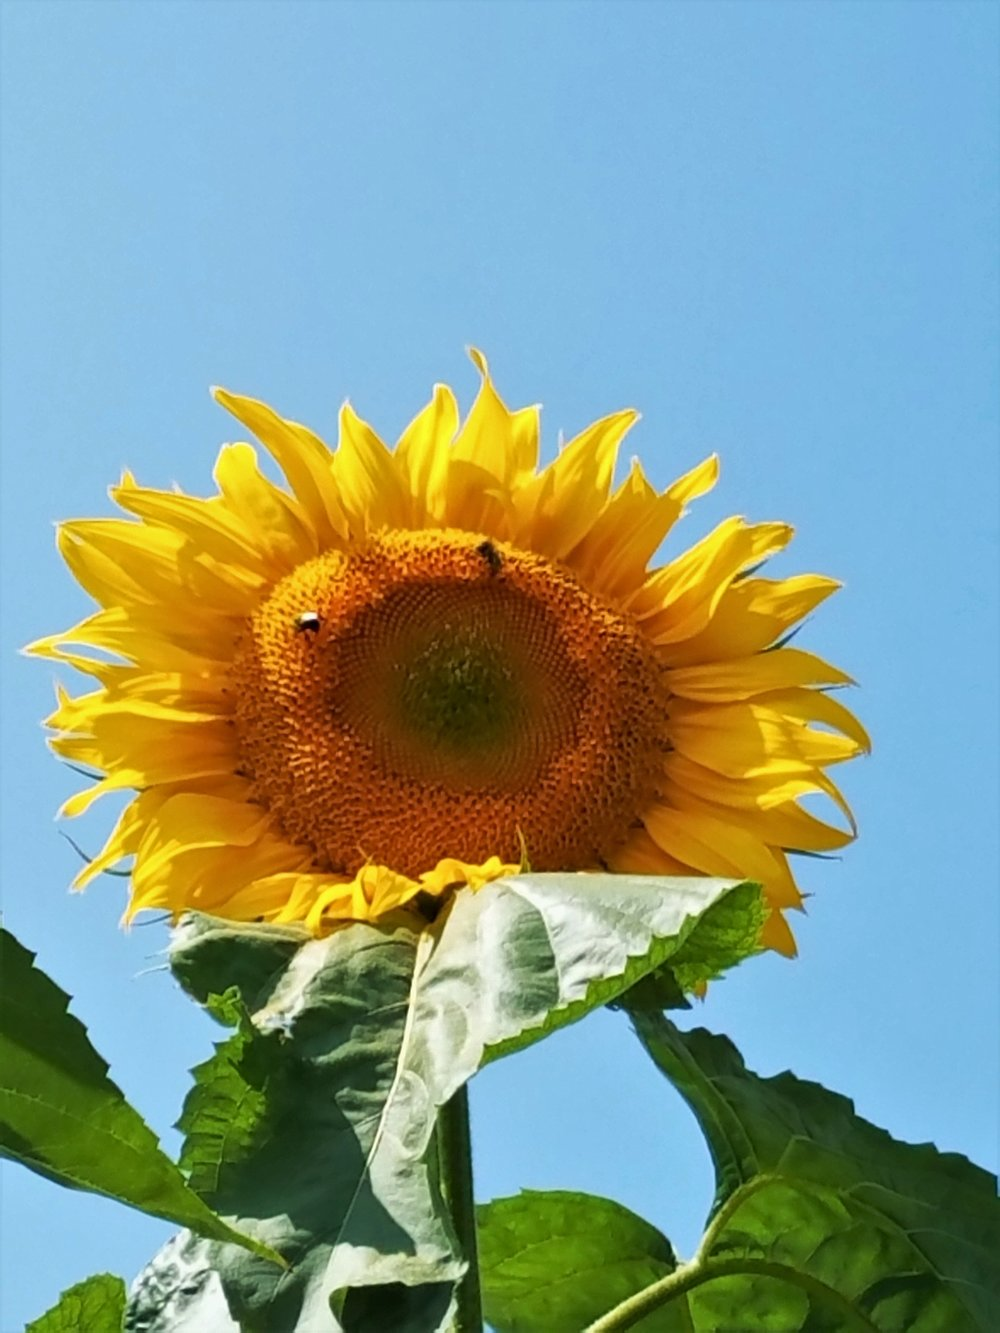 Sunflower Pic for Sept Gardening Tips Blog.jpeg